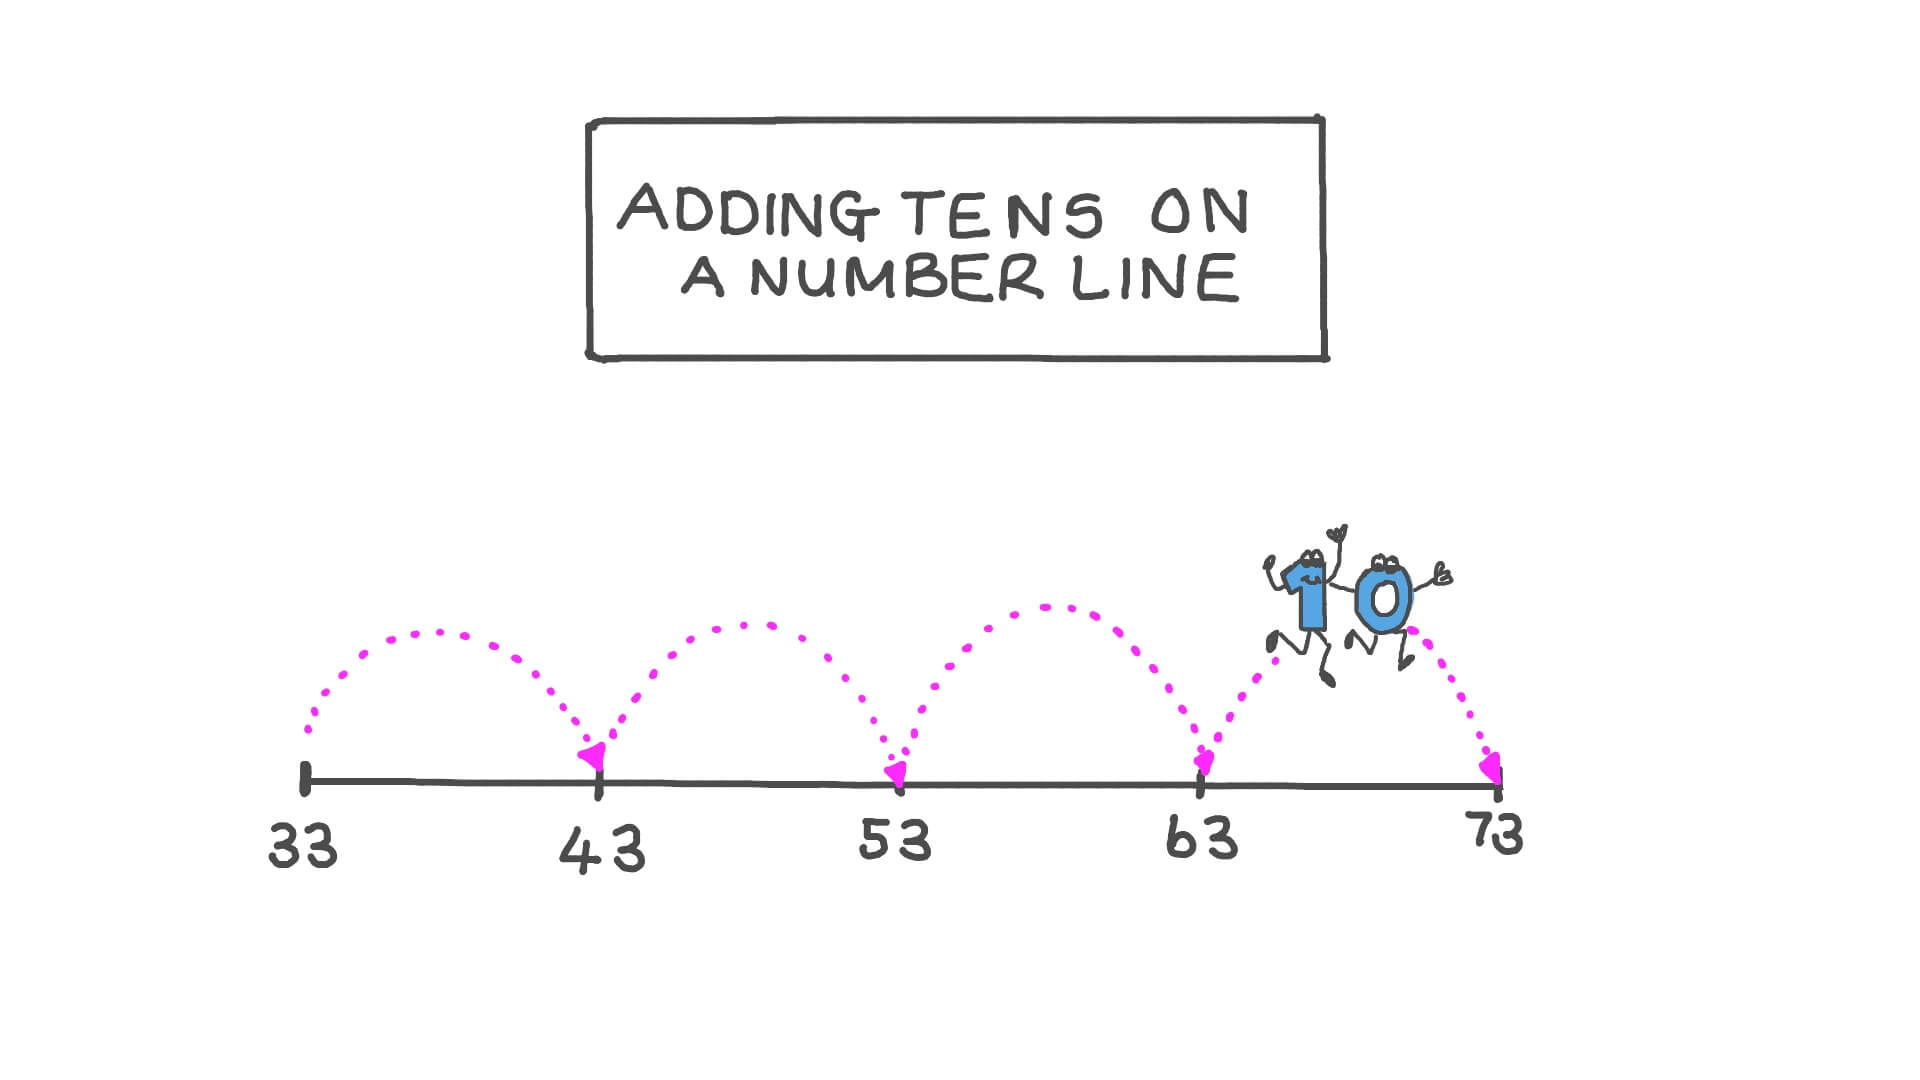 hight resolution of Lesson: Adding Tens on a Number Line   Nagwa